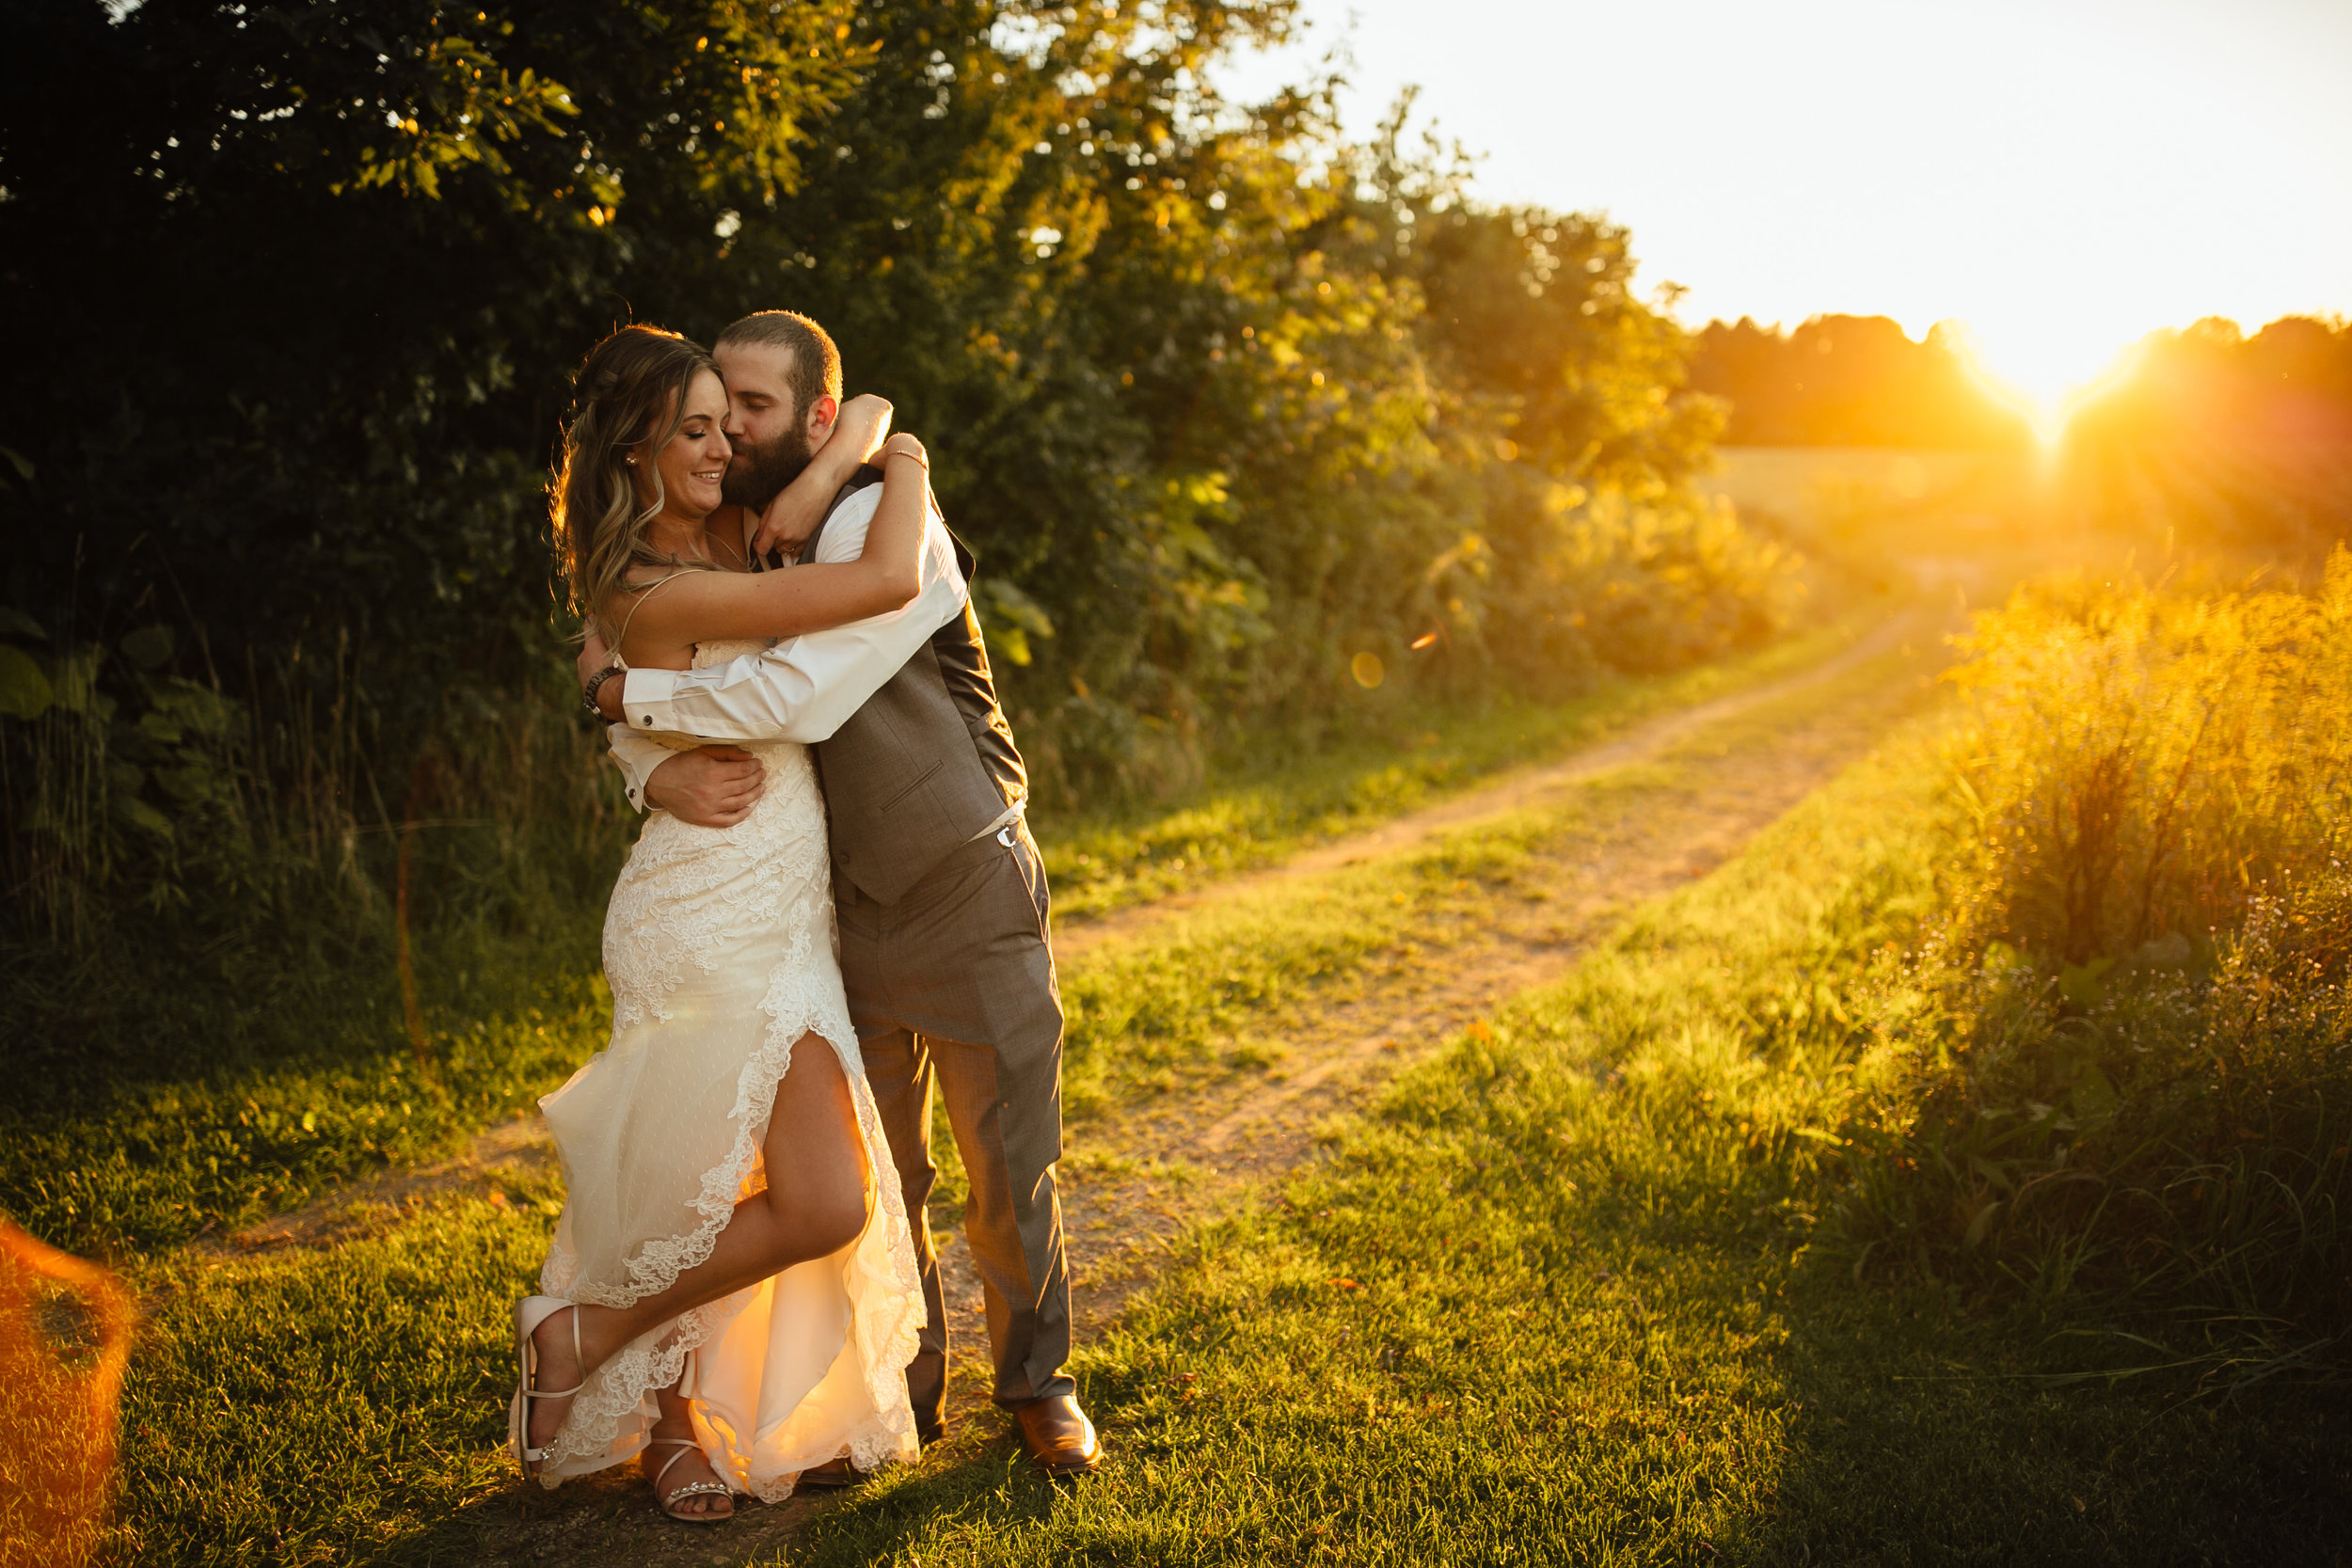 2018-9-Stephanie-Tim-Golden-Hour-Hidden-Vineyard-Wedding-Michigan-Wedding-Photographer-63.jpg